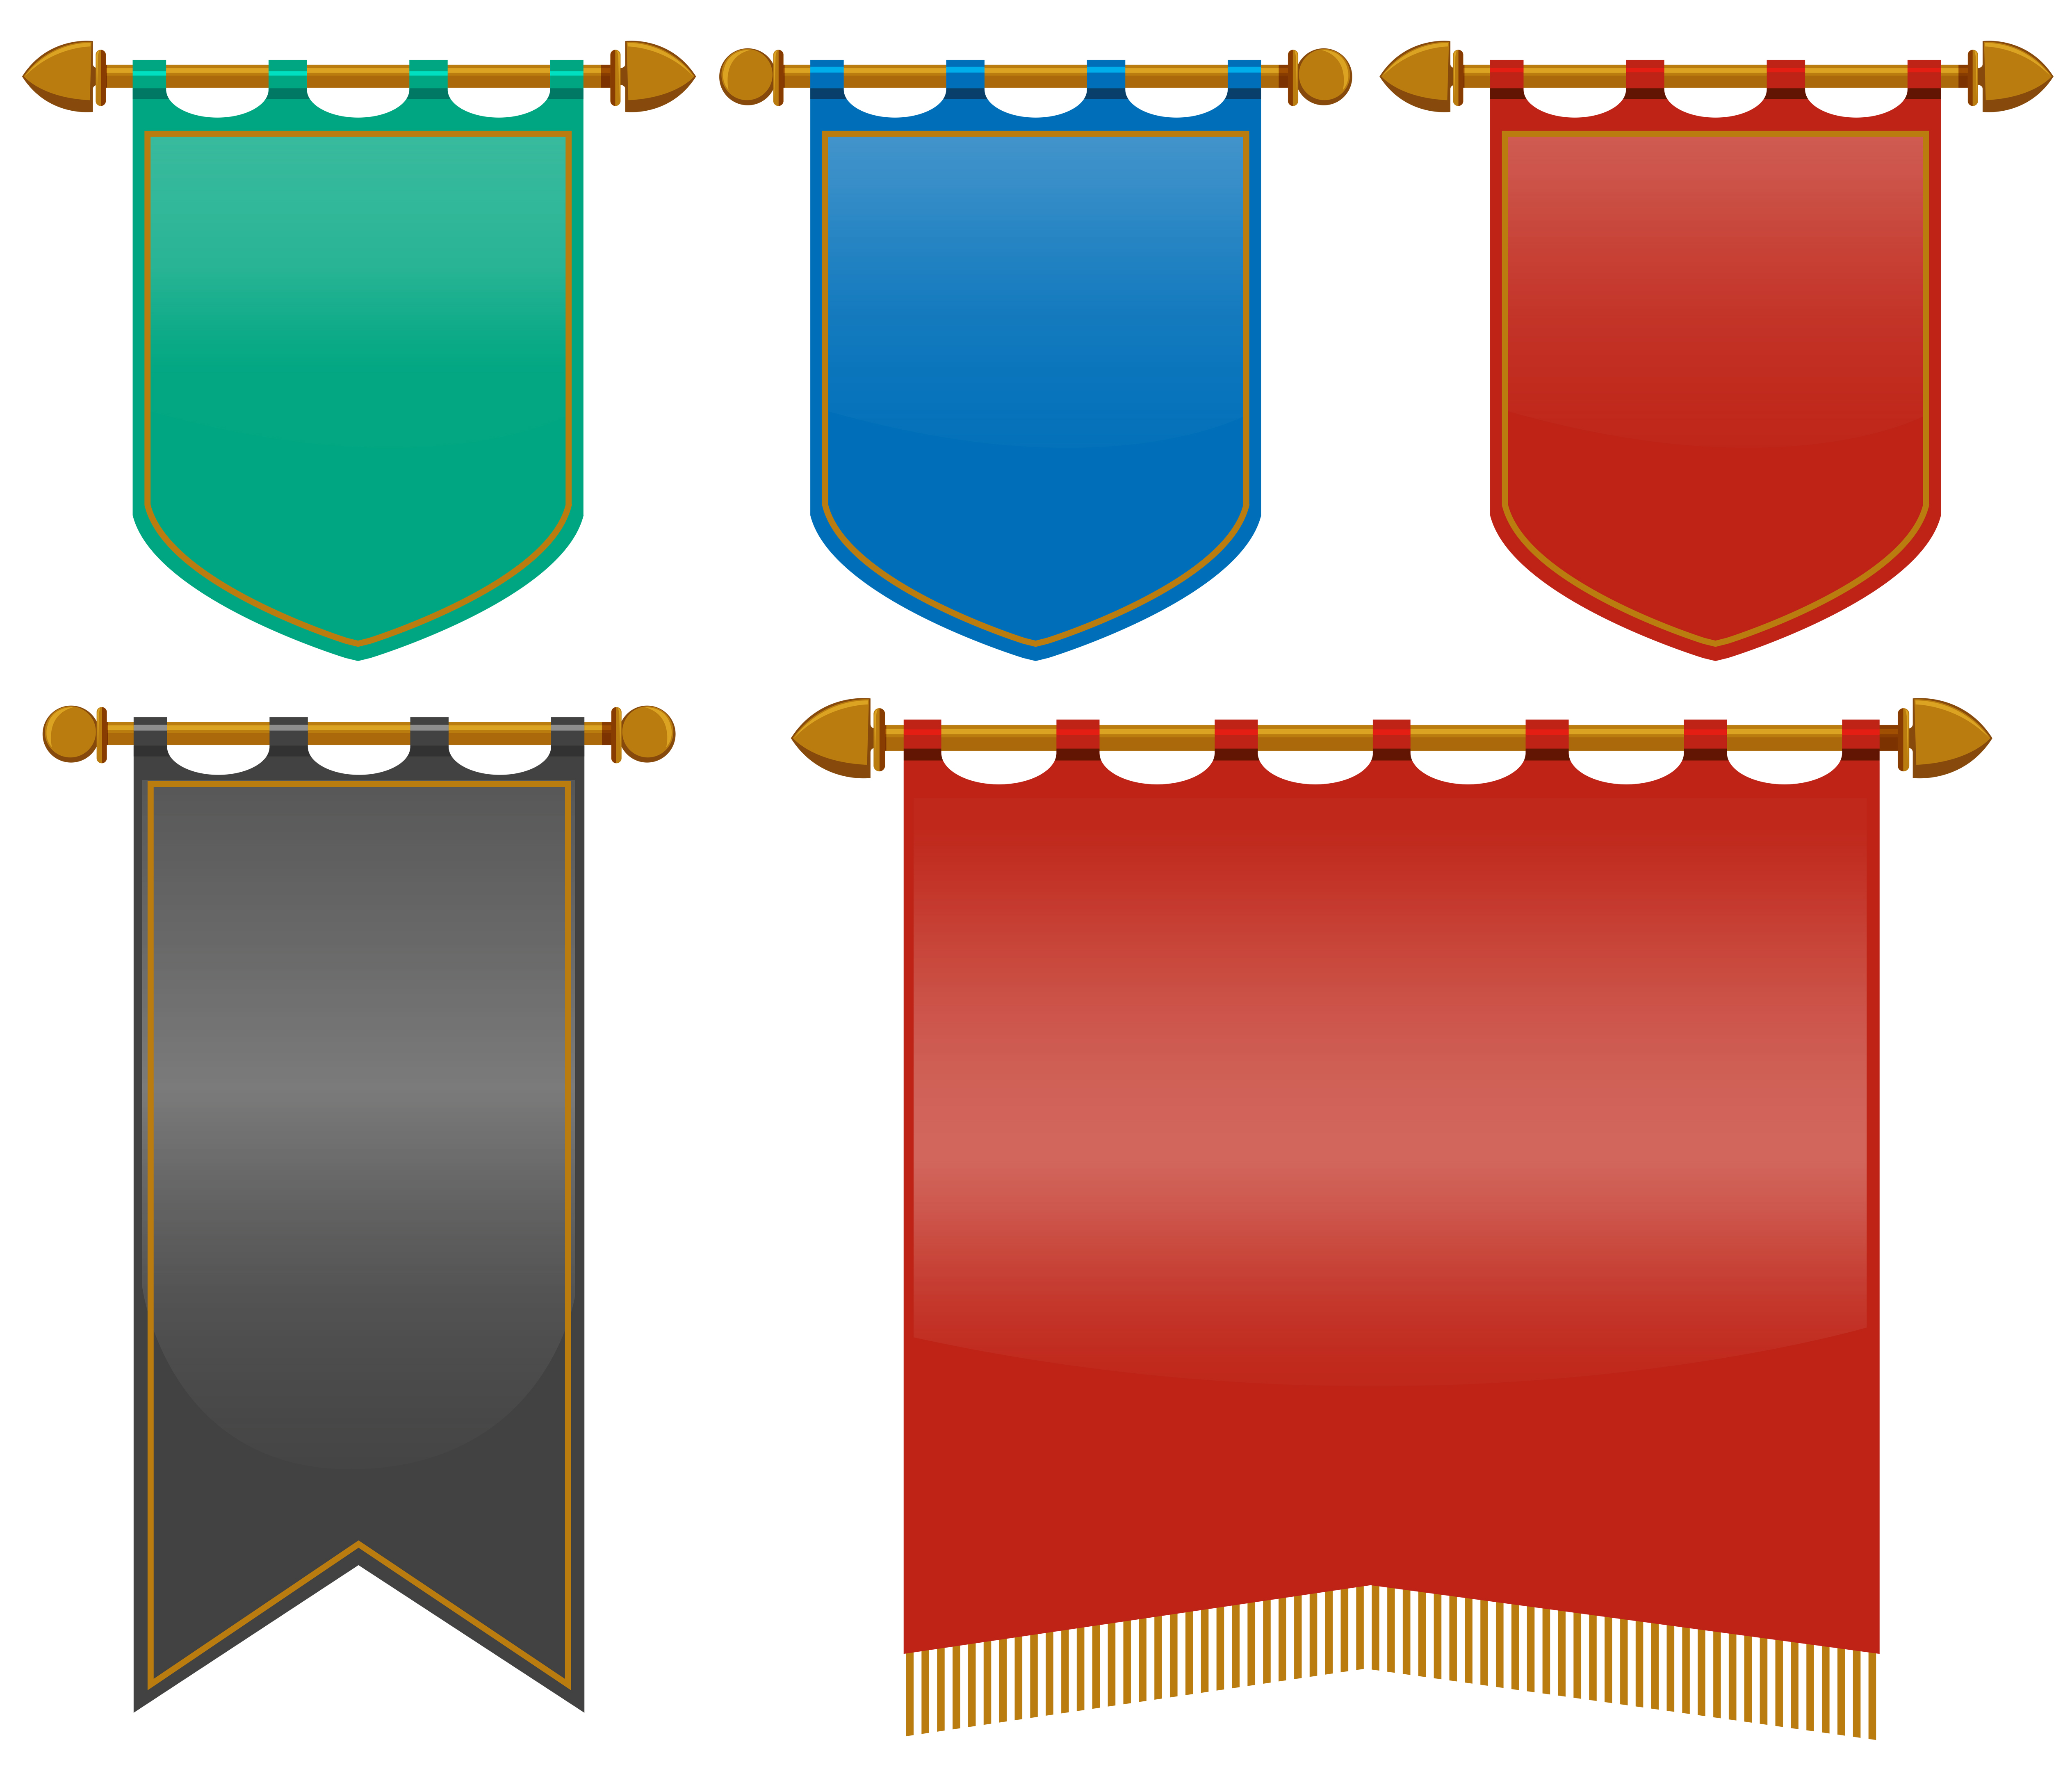 Triangle Road Signs >> Medieval flags in different colors - Download Free Vector ...